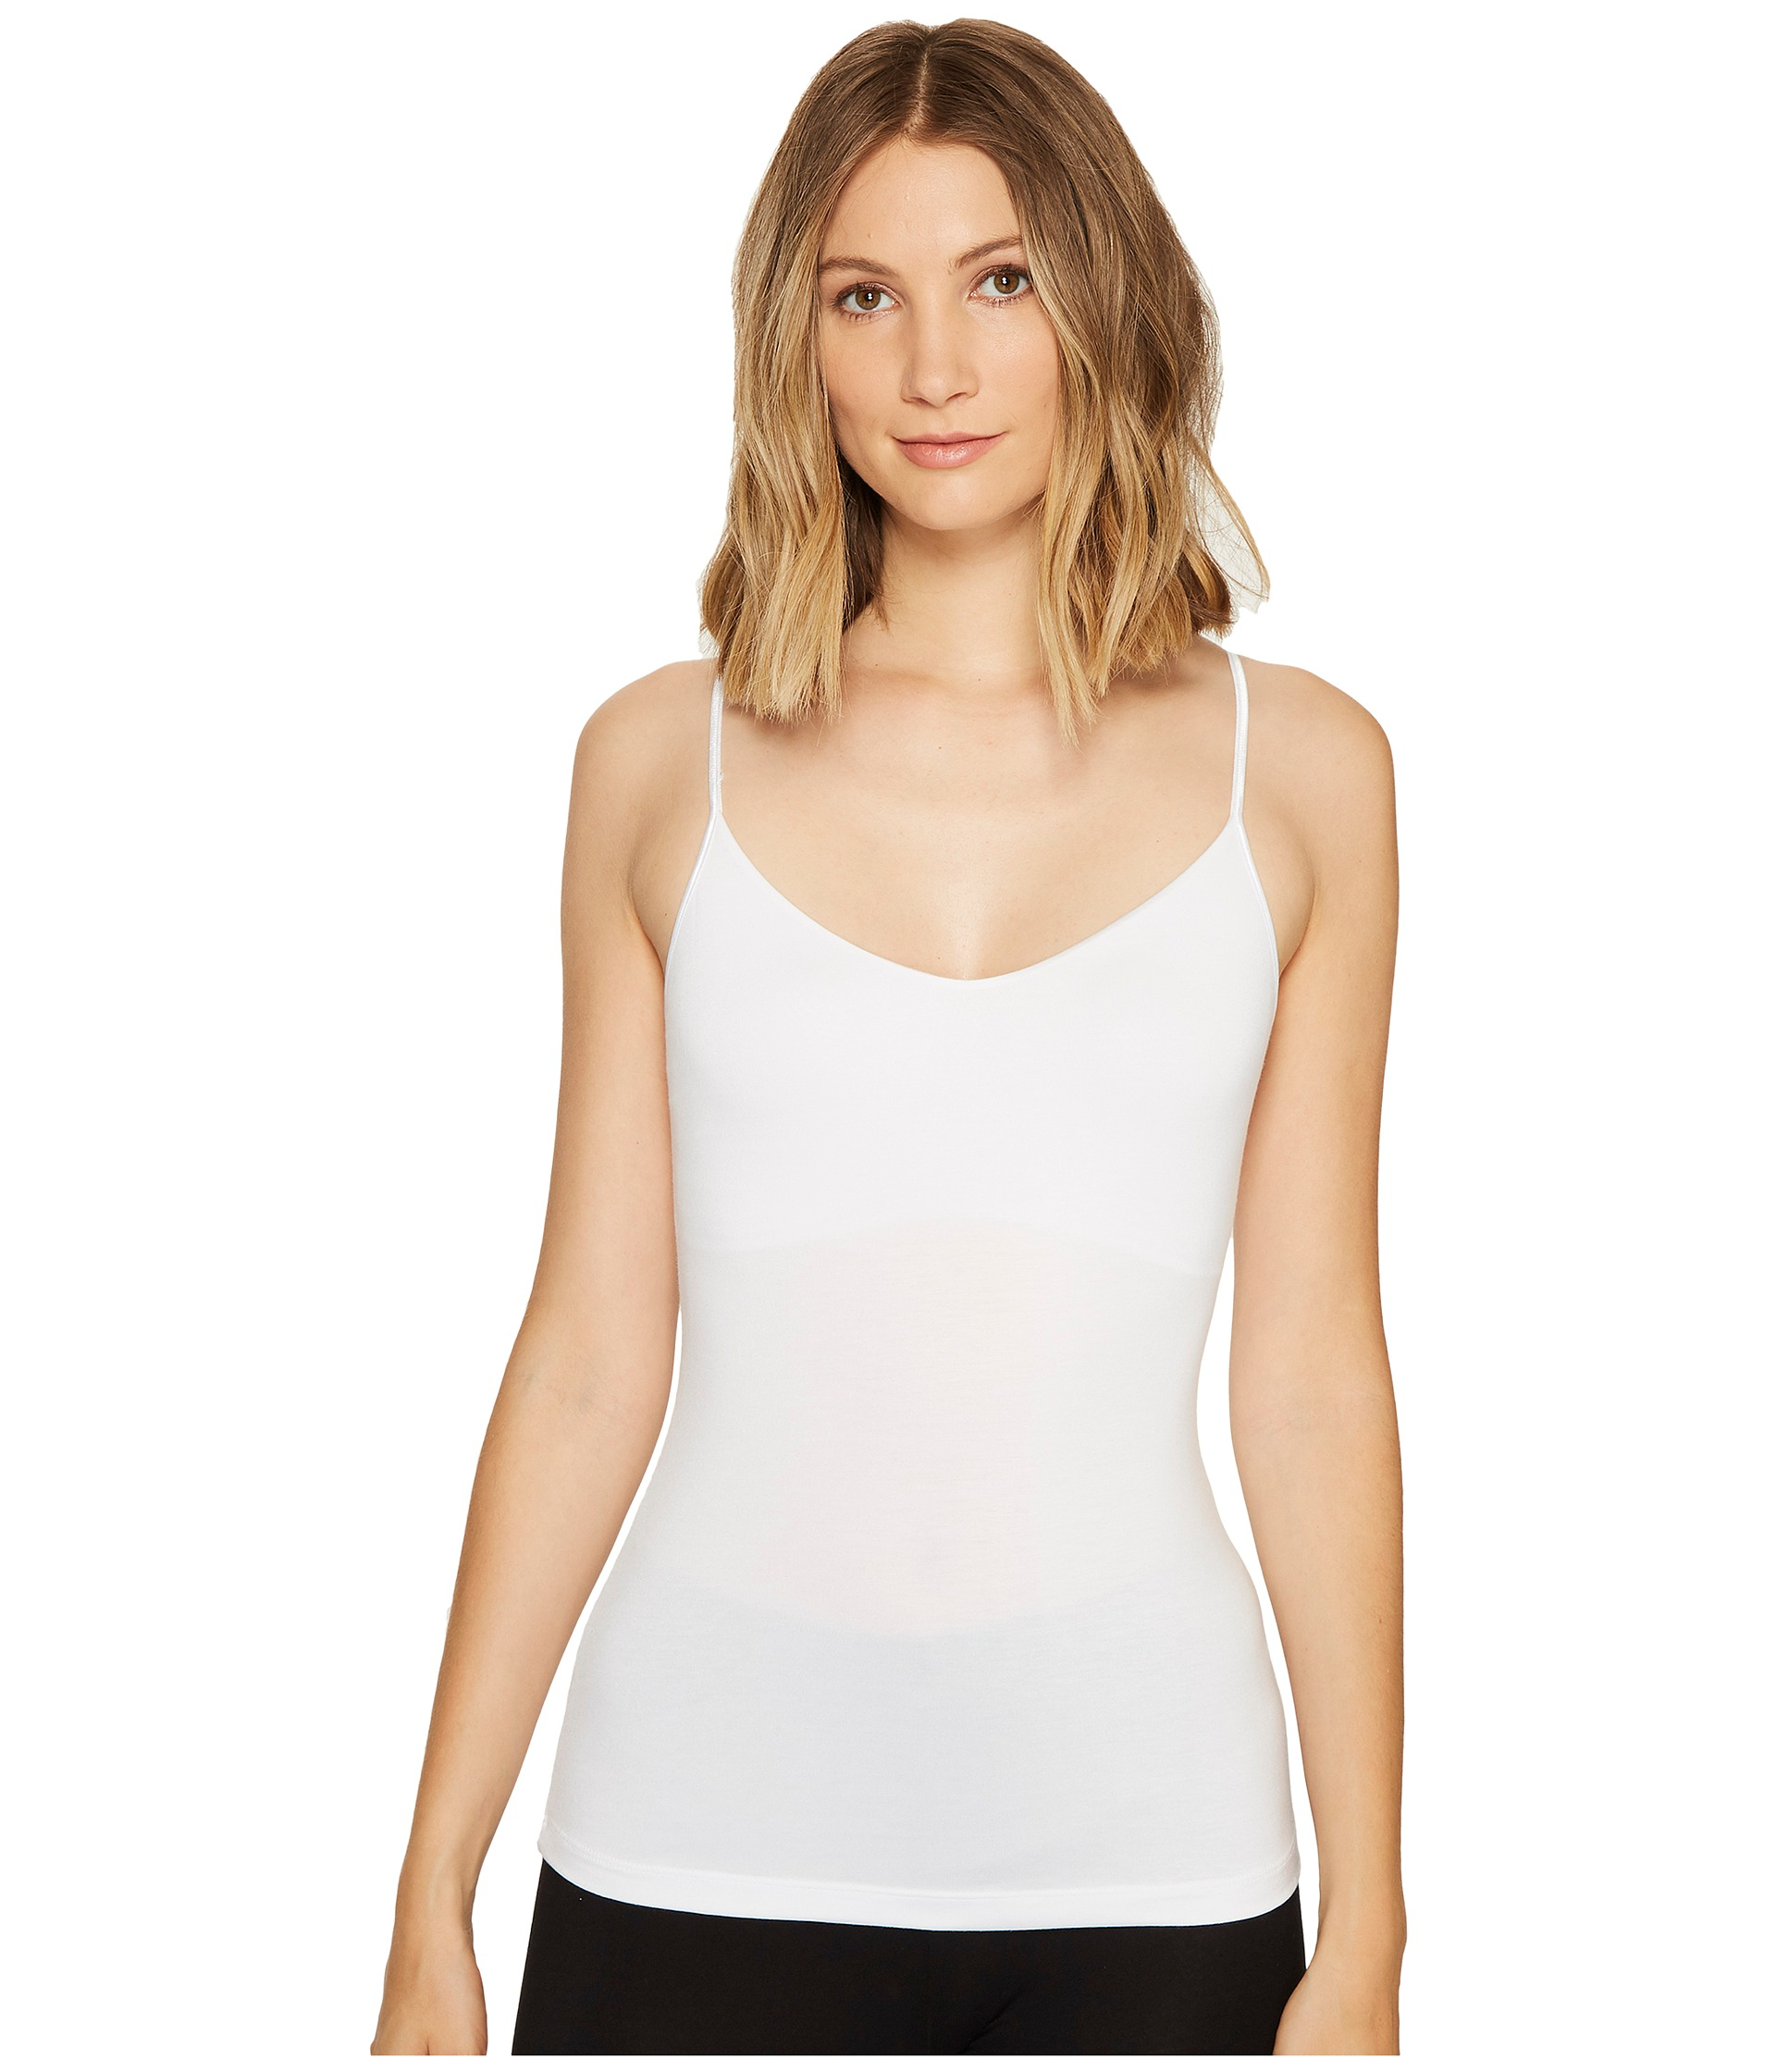 Free shipping and returns on camisoles and tanks for women at fluctuatin.gq Shop by Size, Color, Brand and more.